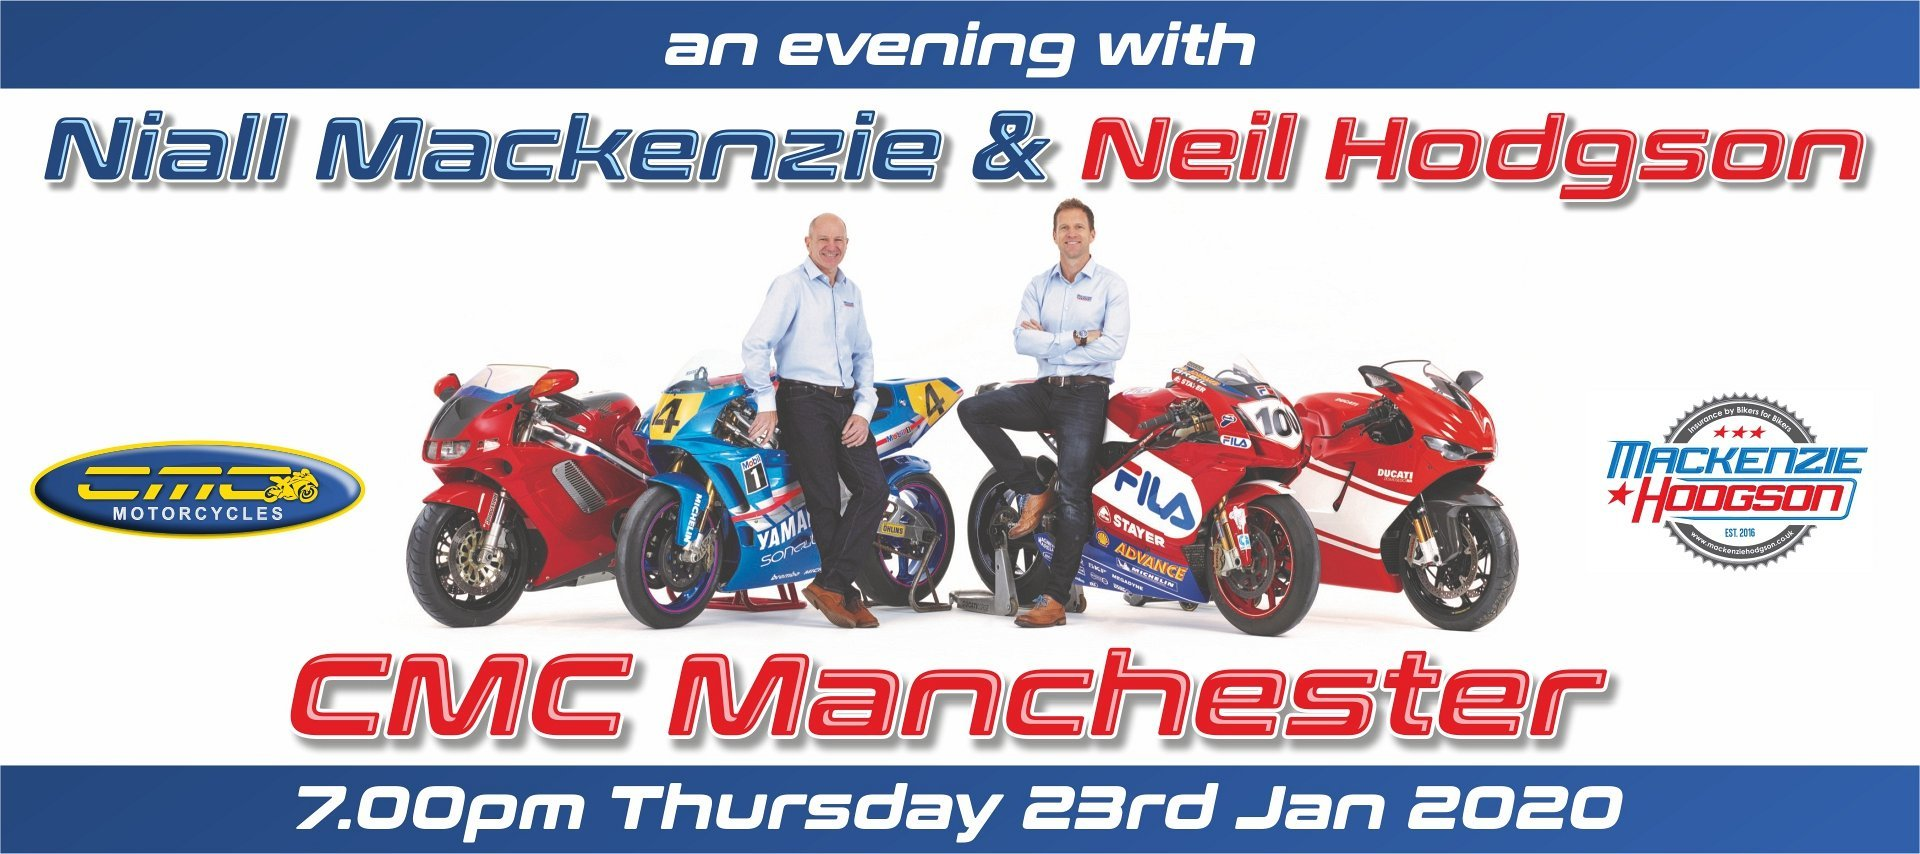 An evening with Niall MacKenzie & Neil Hodgson